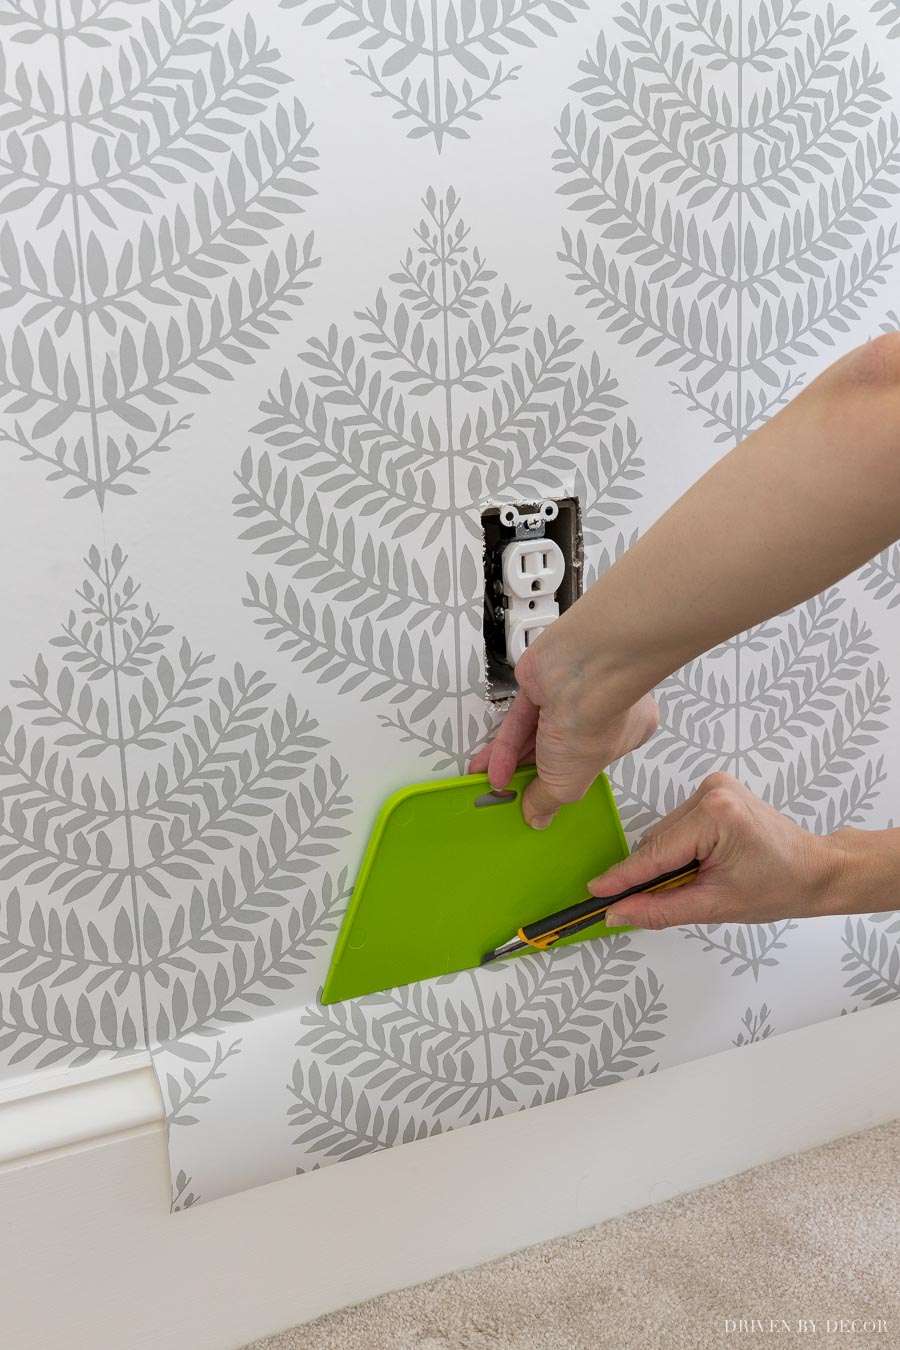 Tips for cutting off extra wallpaper in a perfect straight line!